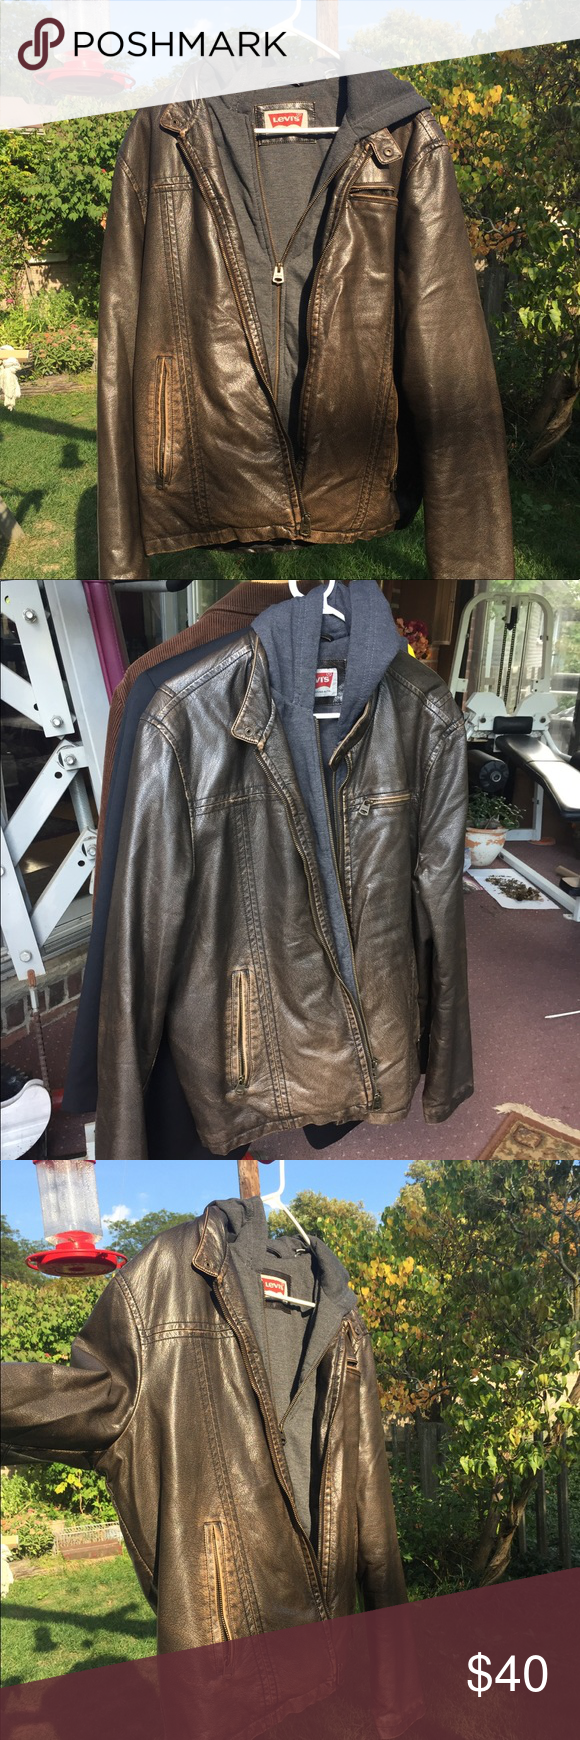 Levi S Leather Jacket With Hoodie Levi S Two Tone Brown Leather Jacket With A Sweatshirt Hoodie Attacked Inside Two Jackets Brown Leather Jacket Hoodie Jacket [ 1740 x 580 Pixel ]